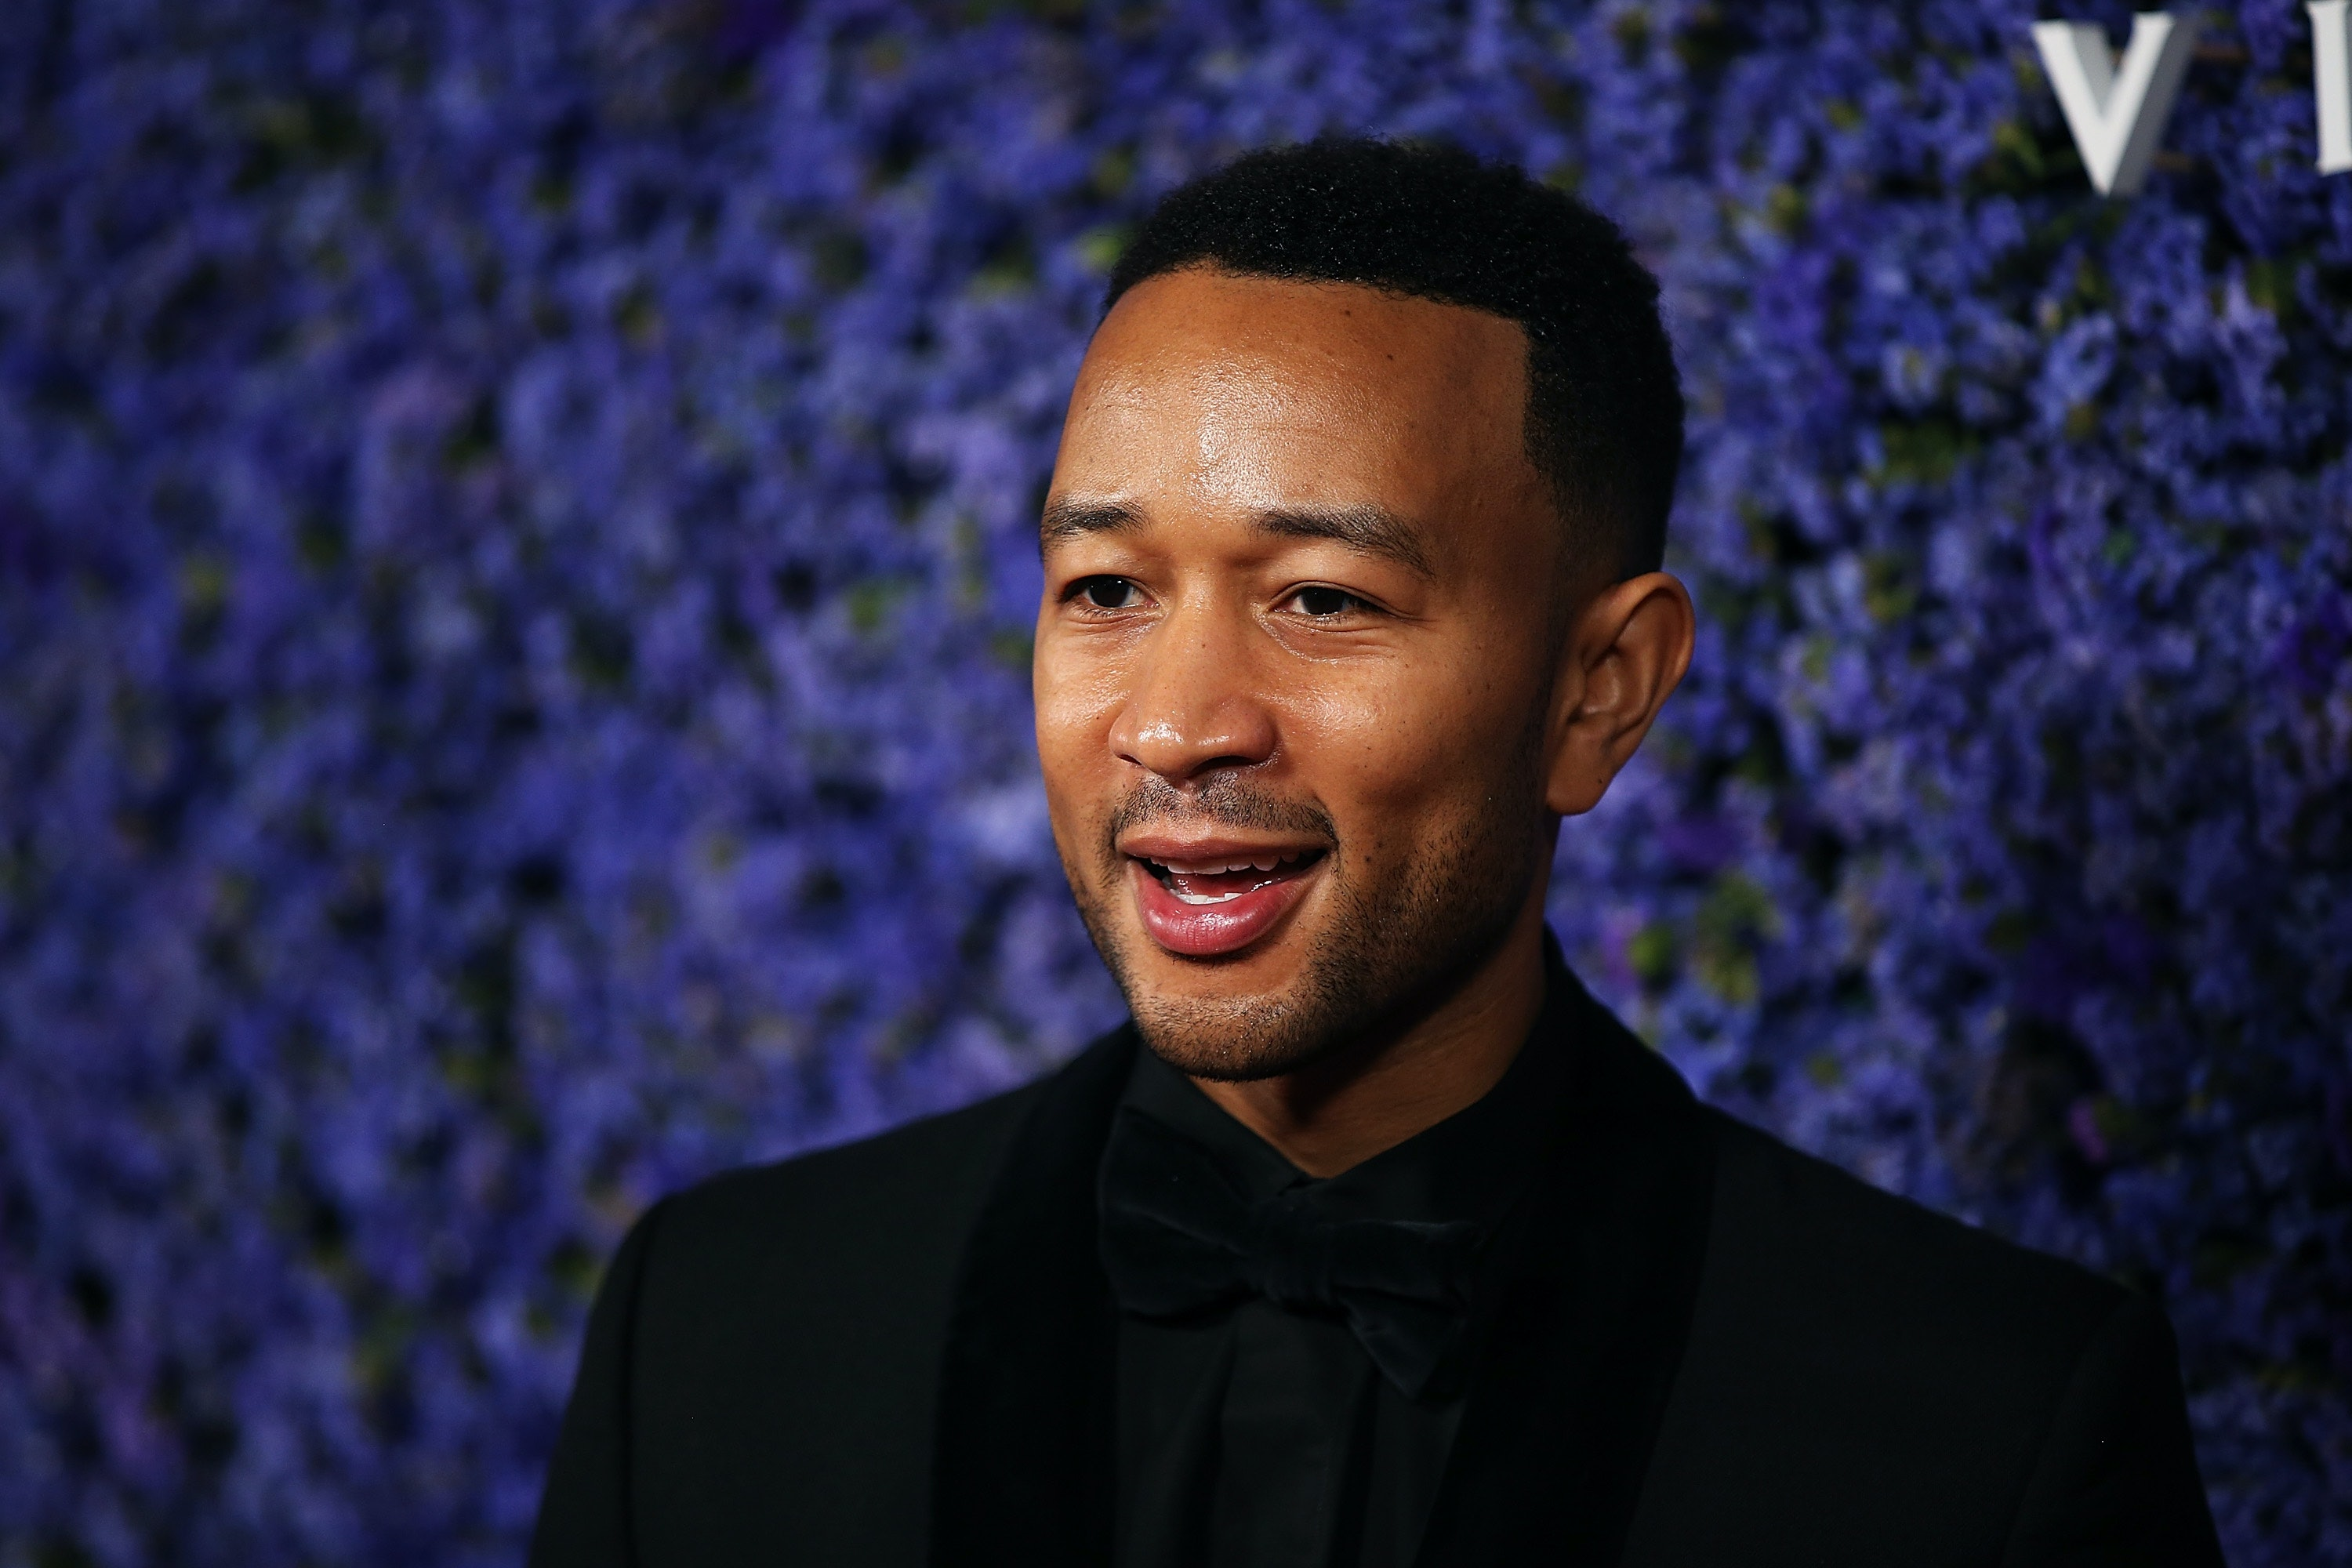 John Legend Released Two Christmas Songs In October, So Fans